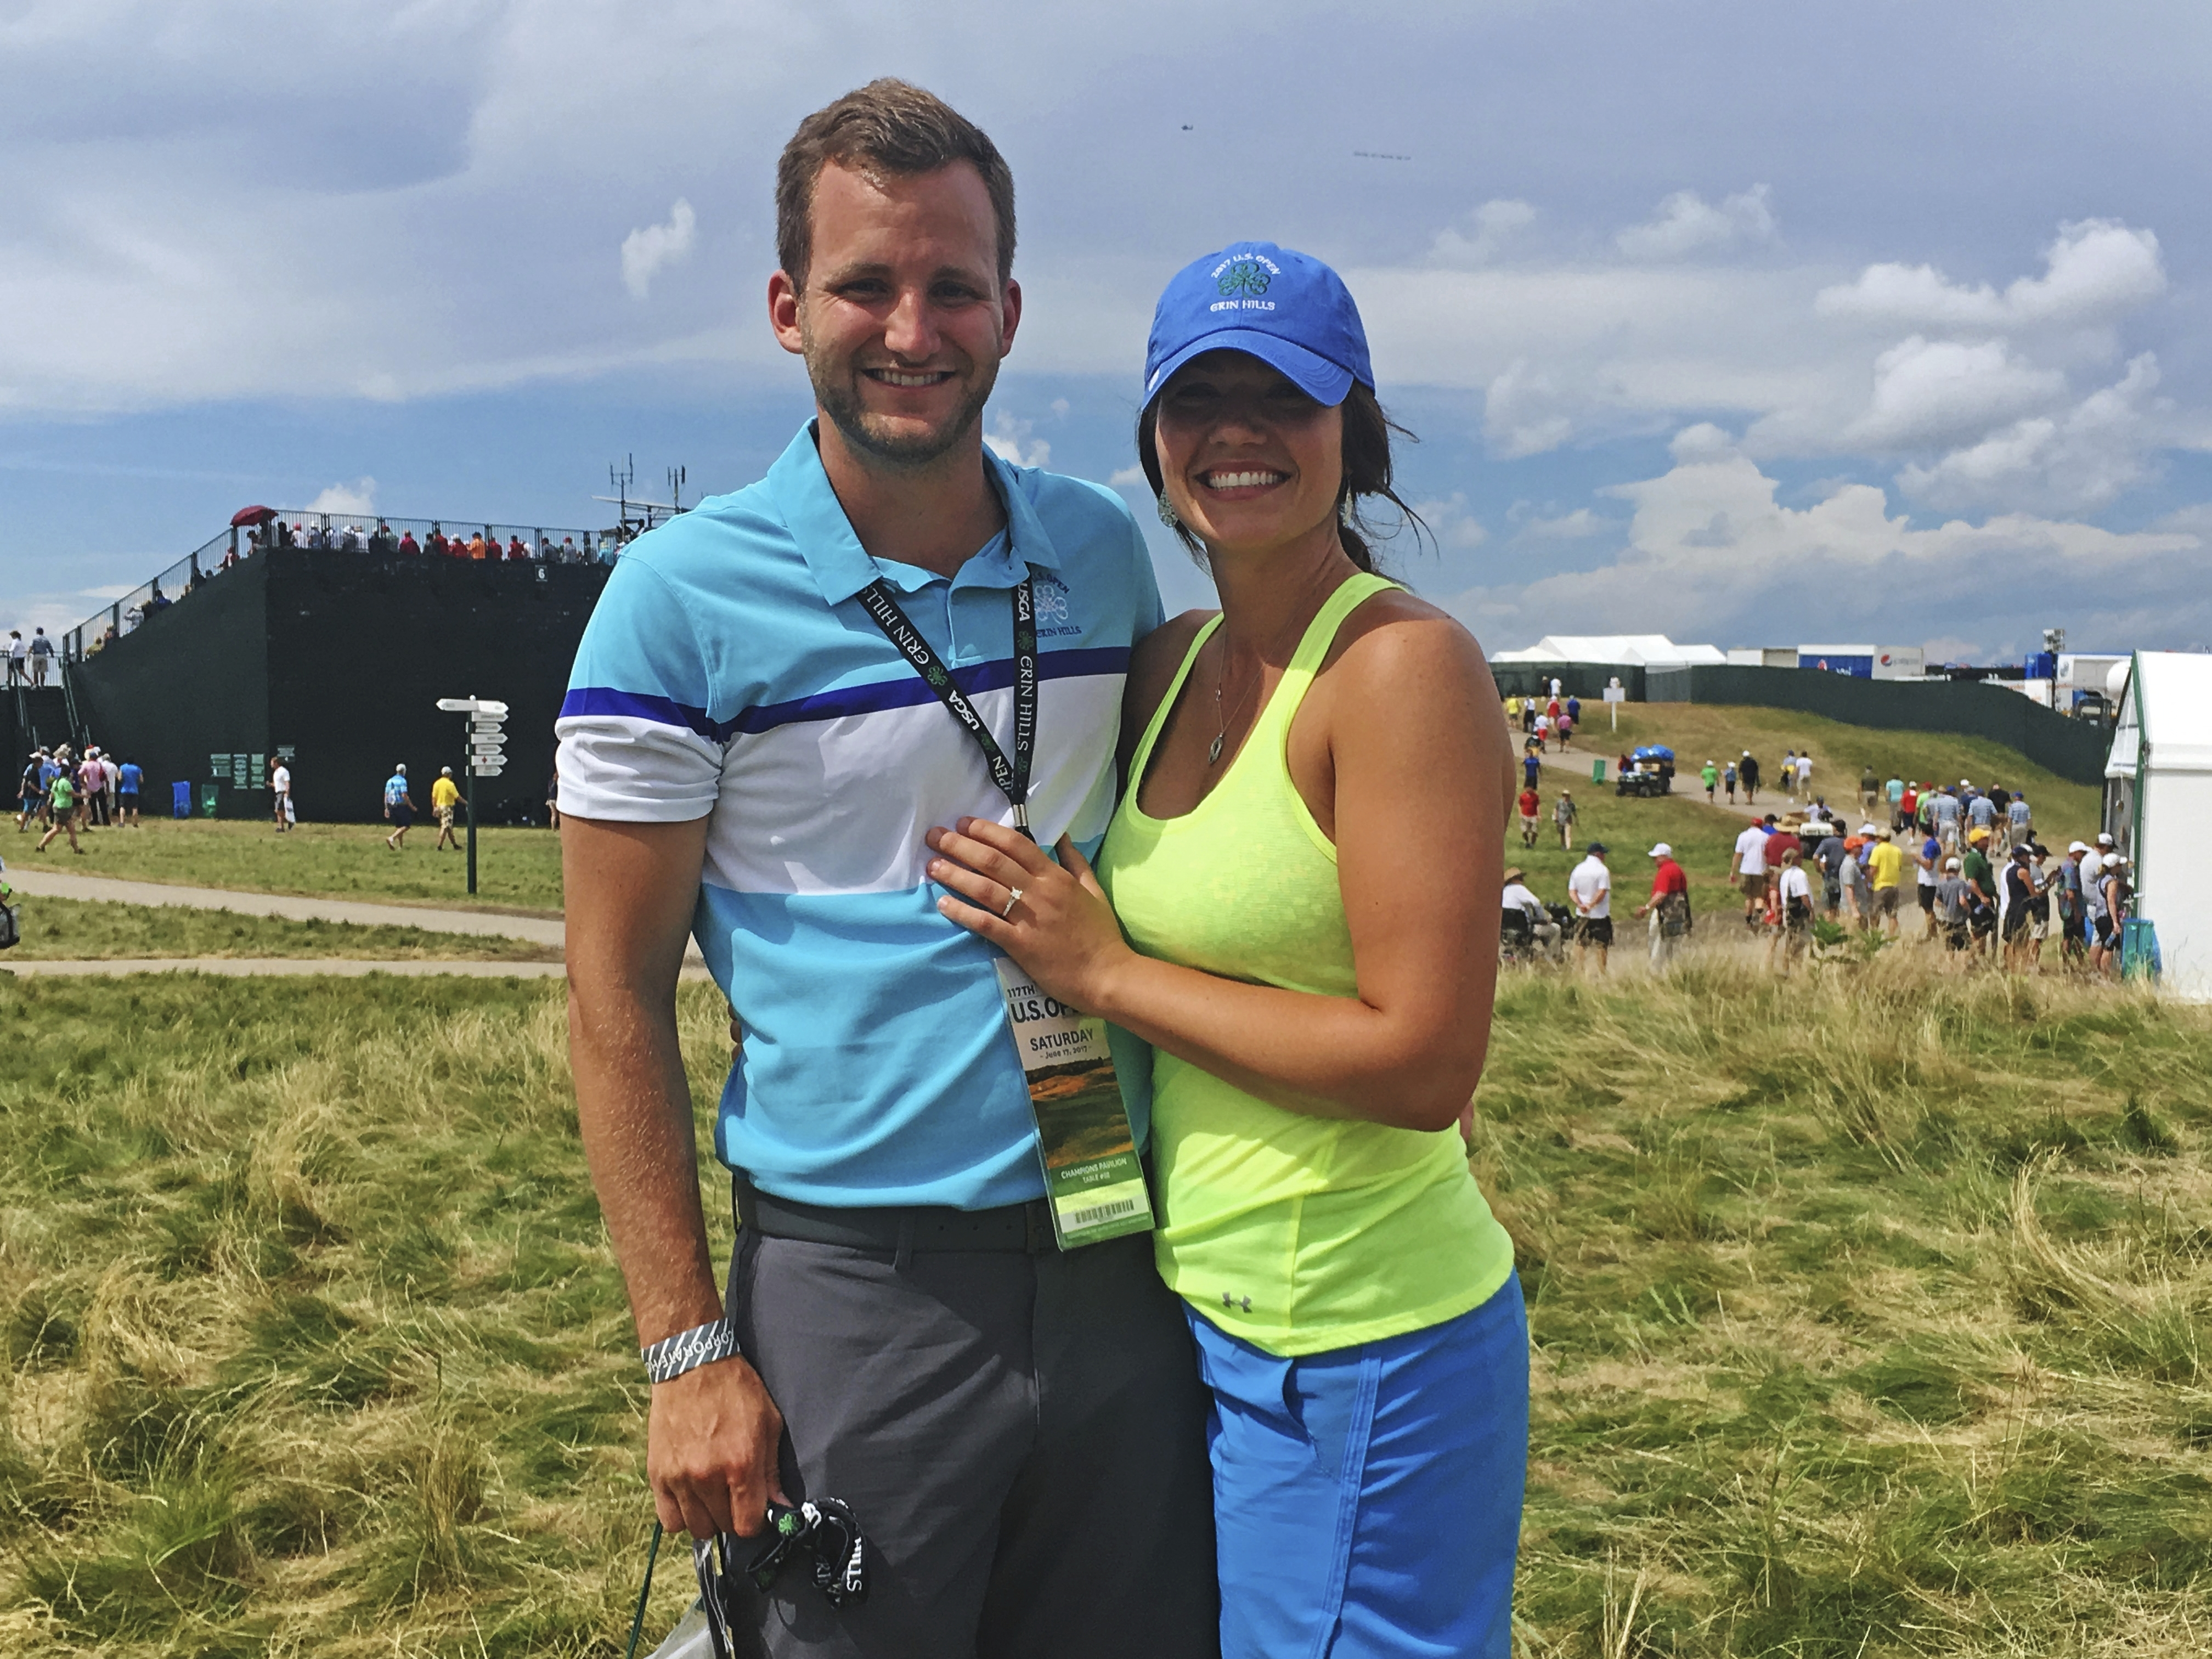 Malea Blise poses with her engagement ring after Nick Rogness proposed to her during the third round of the U.S. Open golf tournament Saturday, June 17, 2017, at Erin Hills in Erin, Wis. (AP Photo/Doug Ferguson)